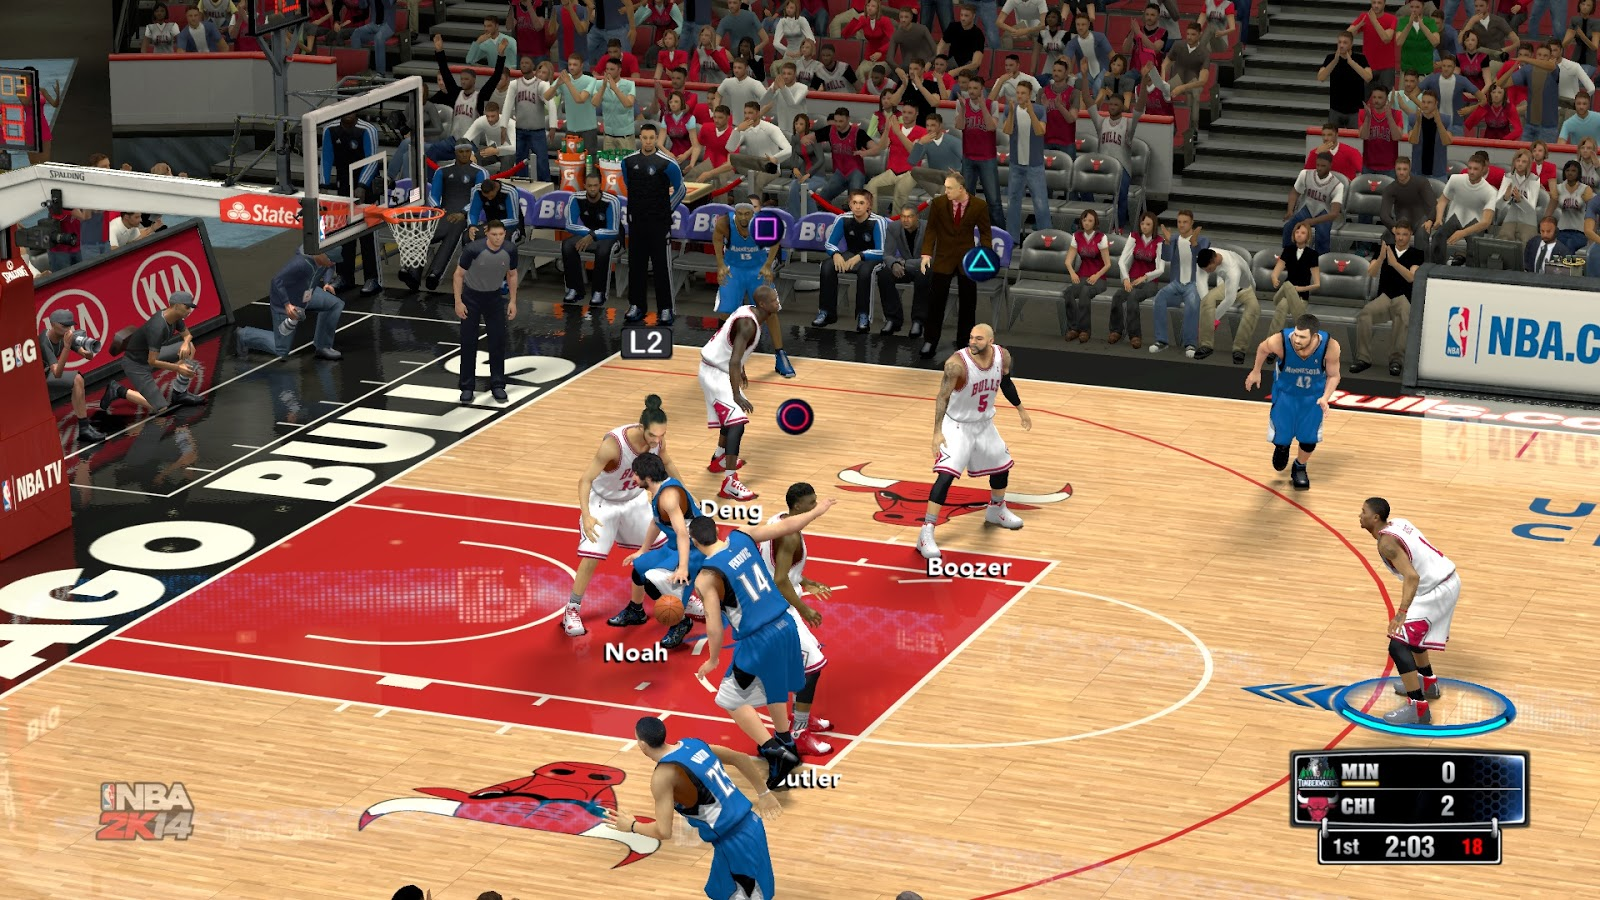 how to download nba app on ps3